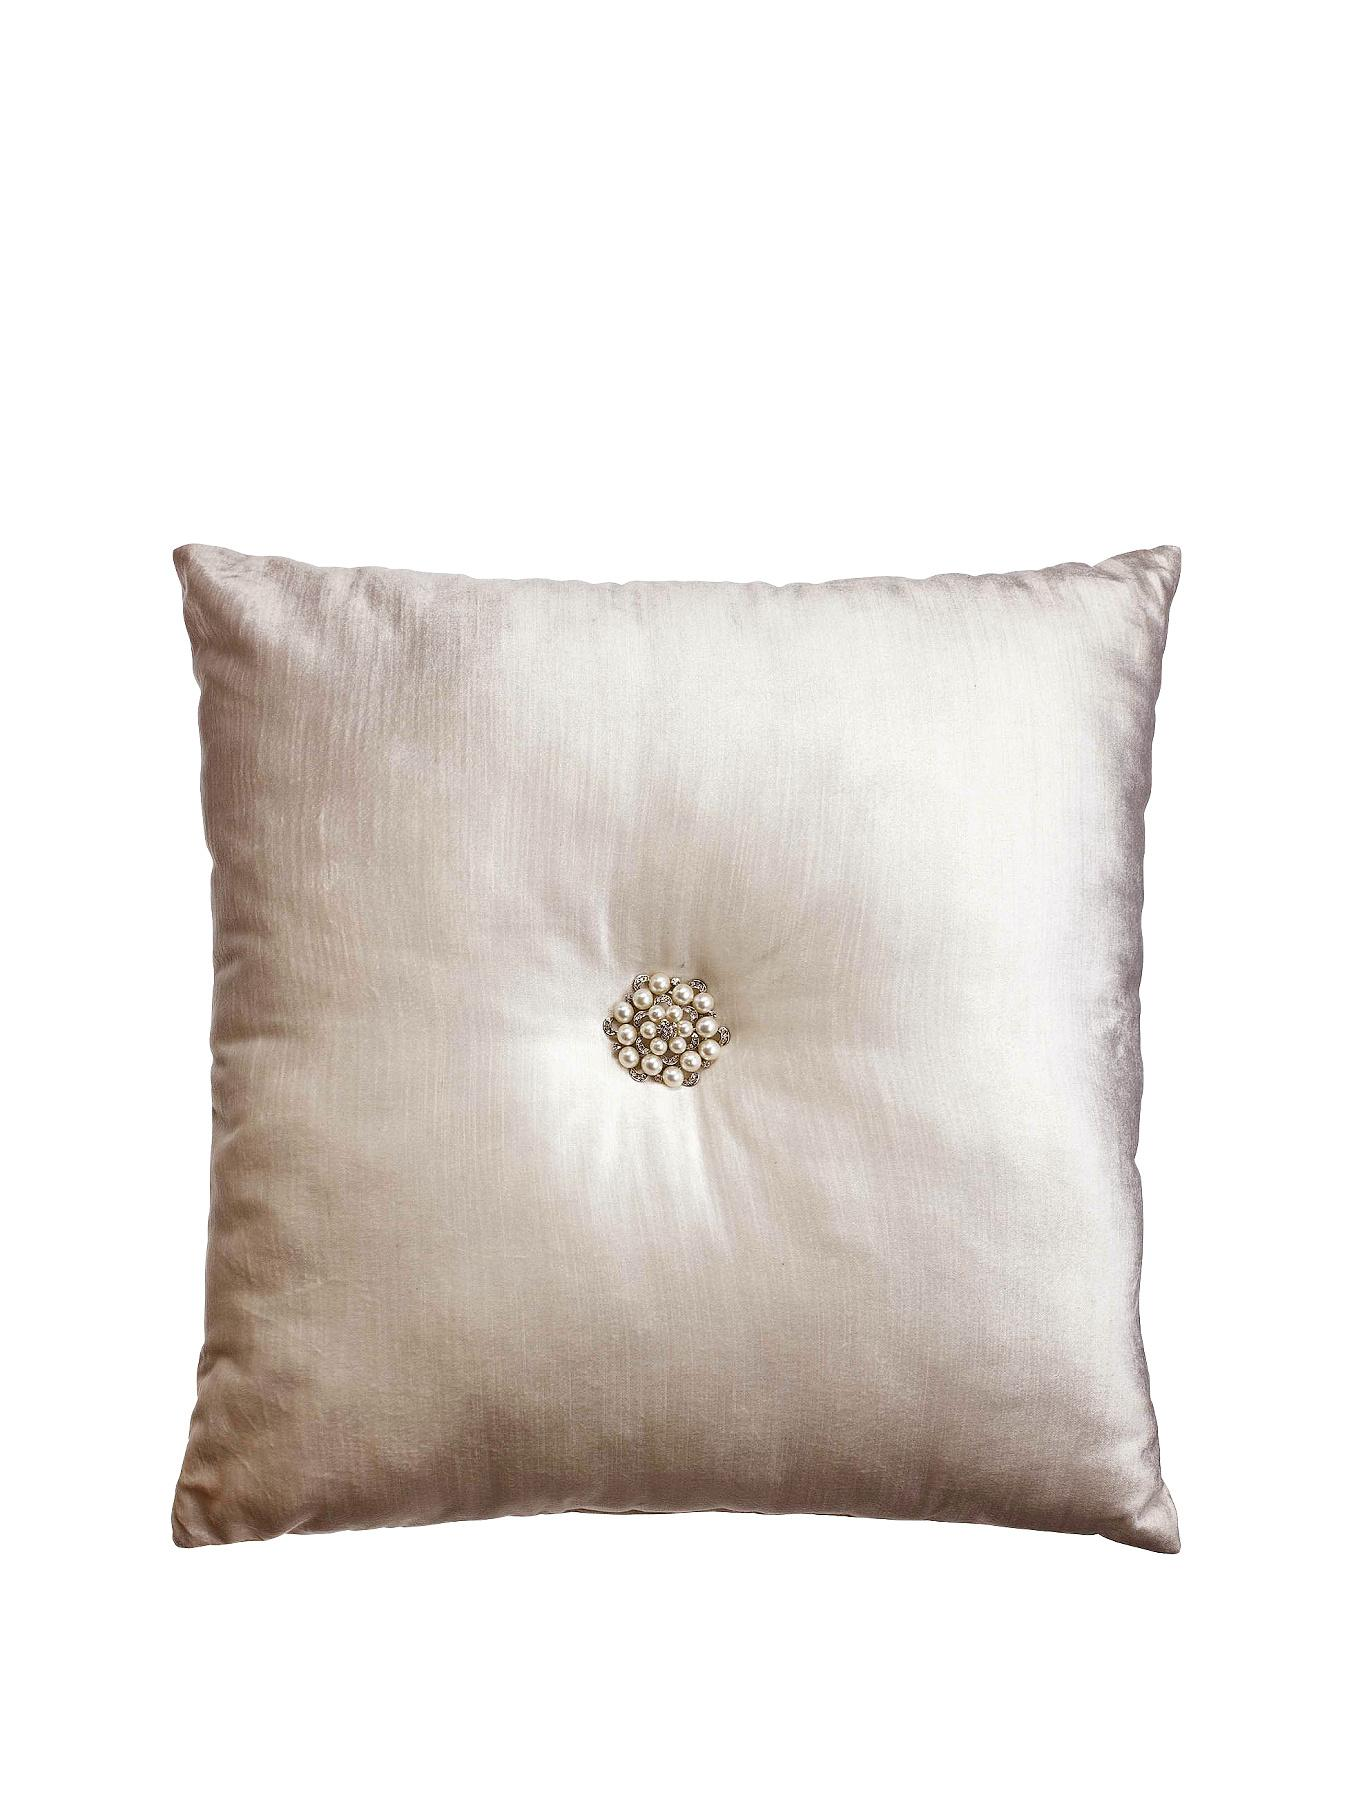 Kylie Minogue Catarina Filled Square Cushion - Gold, Gold